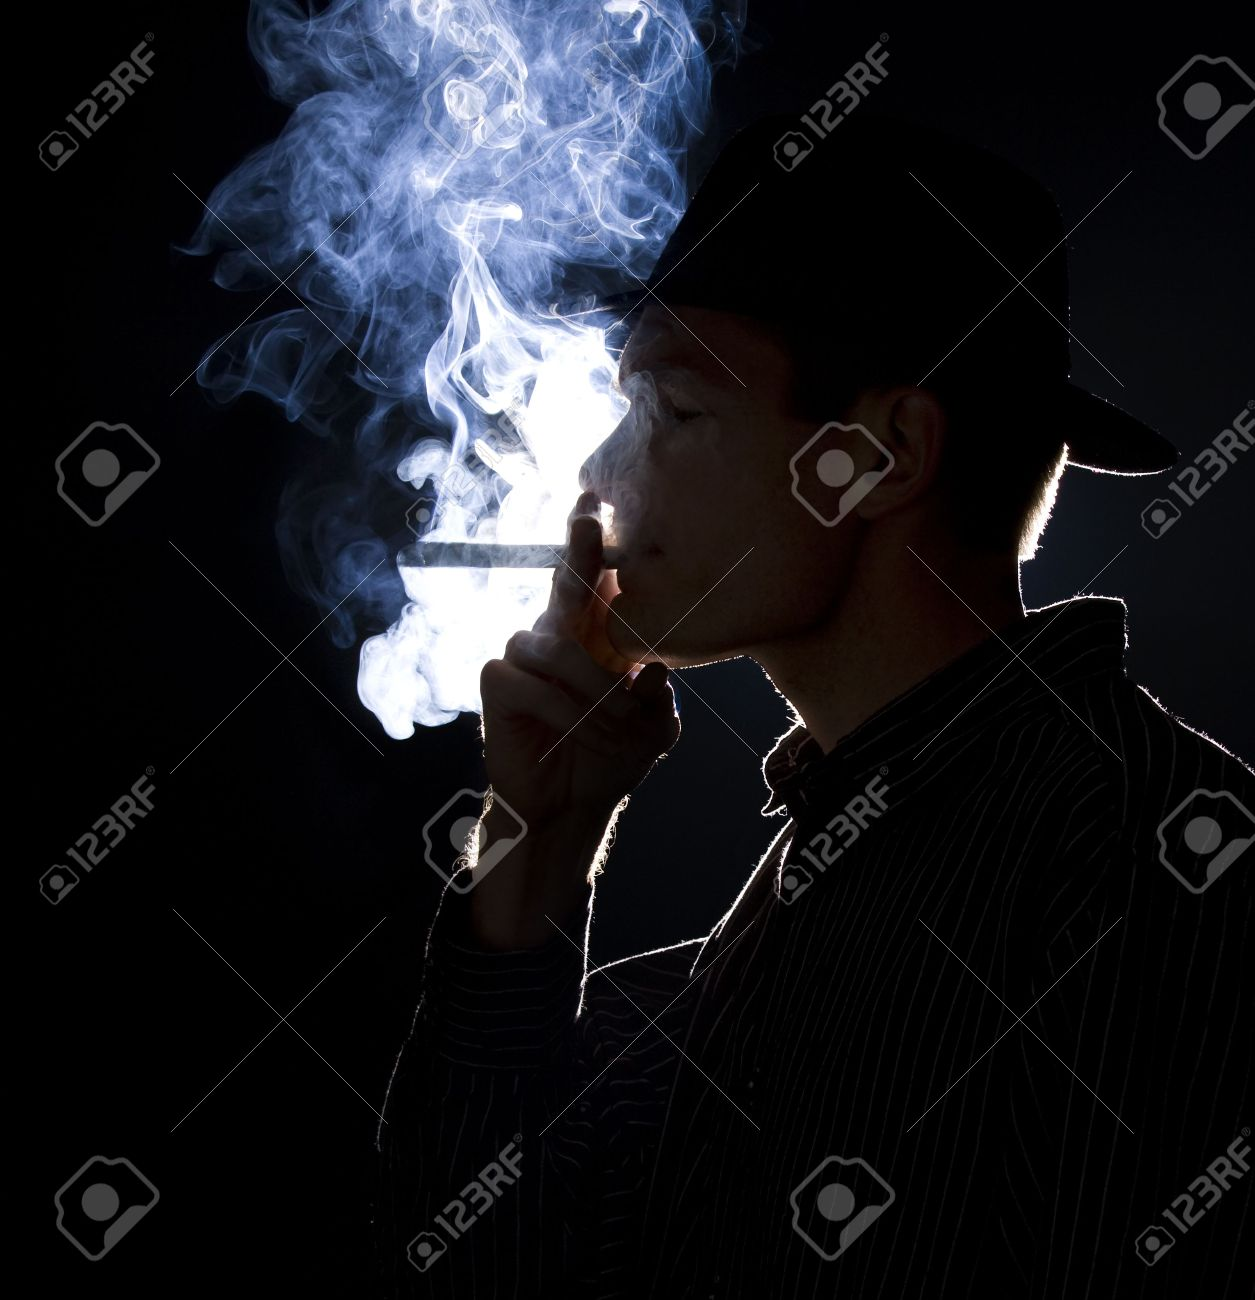 Backlit man smoking a cigar or cigarette with lots of smoke visible Stock Photo - 5371850